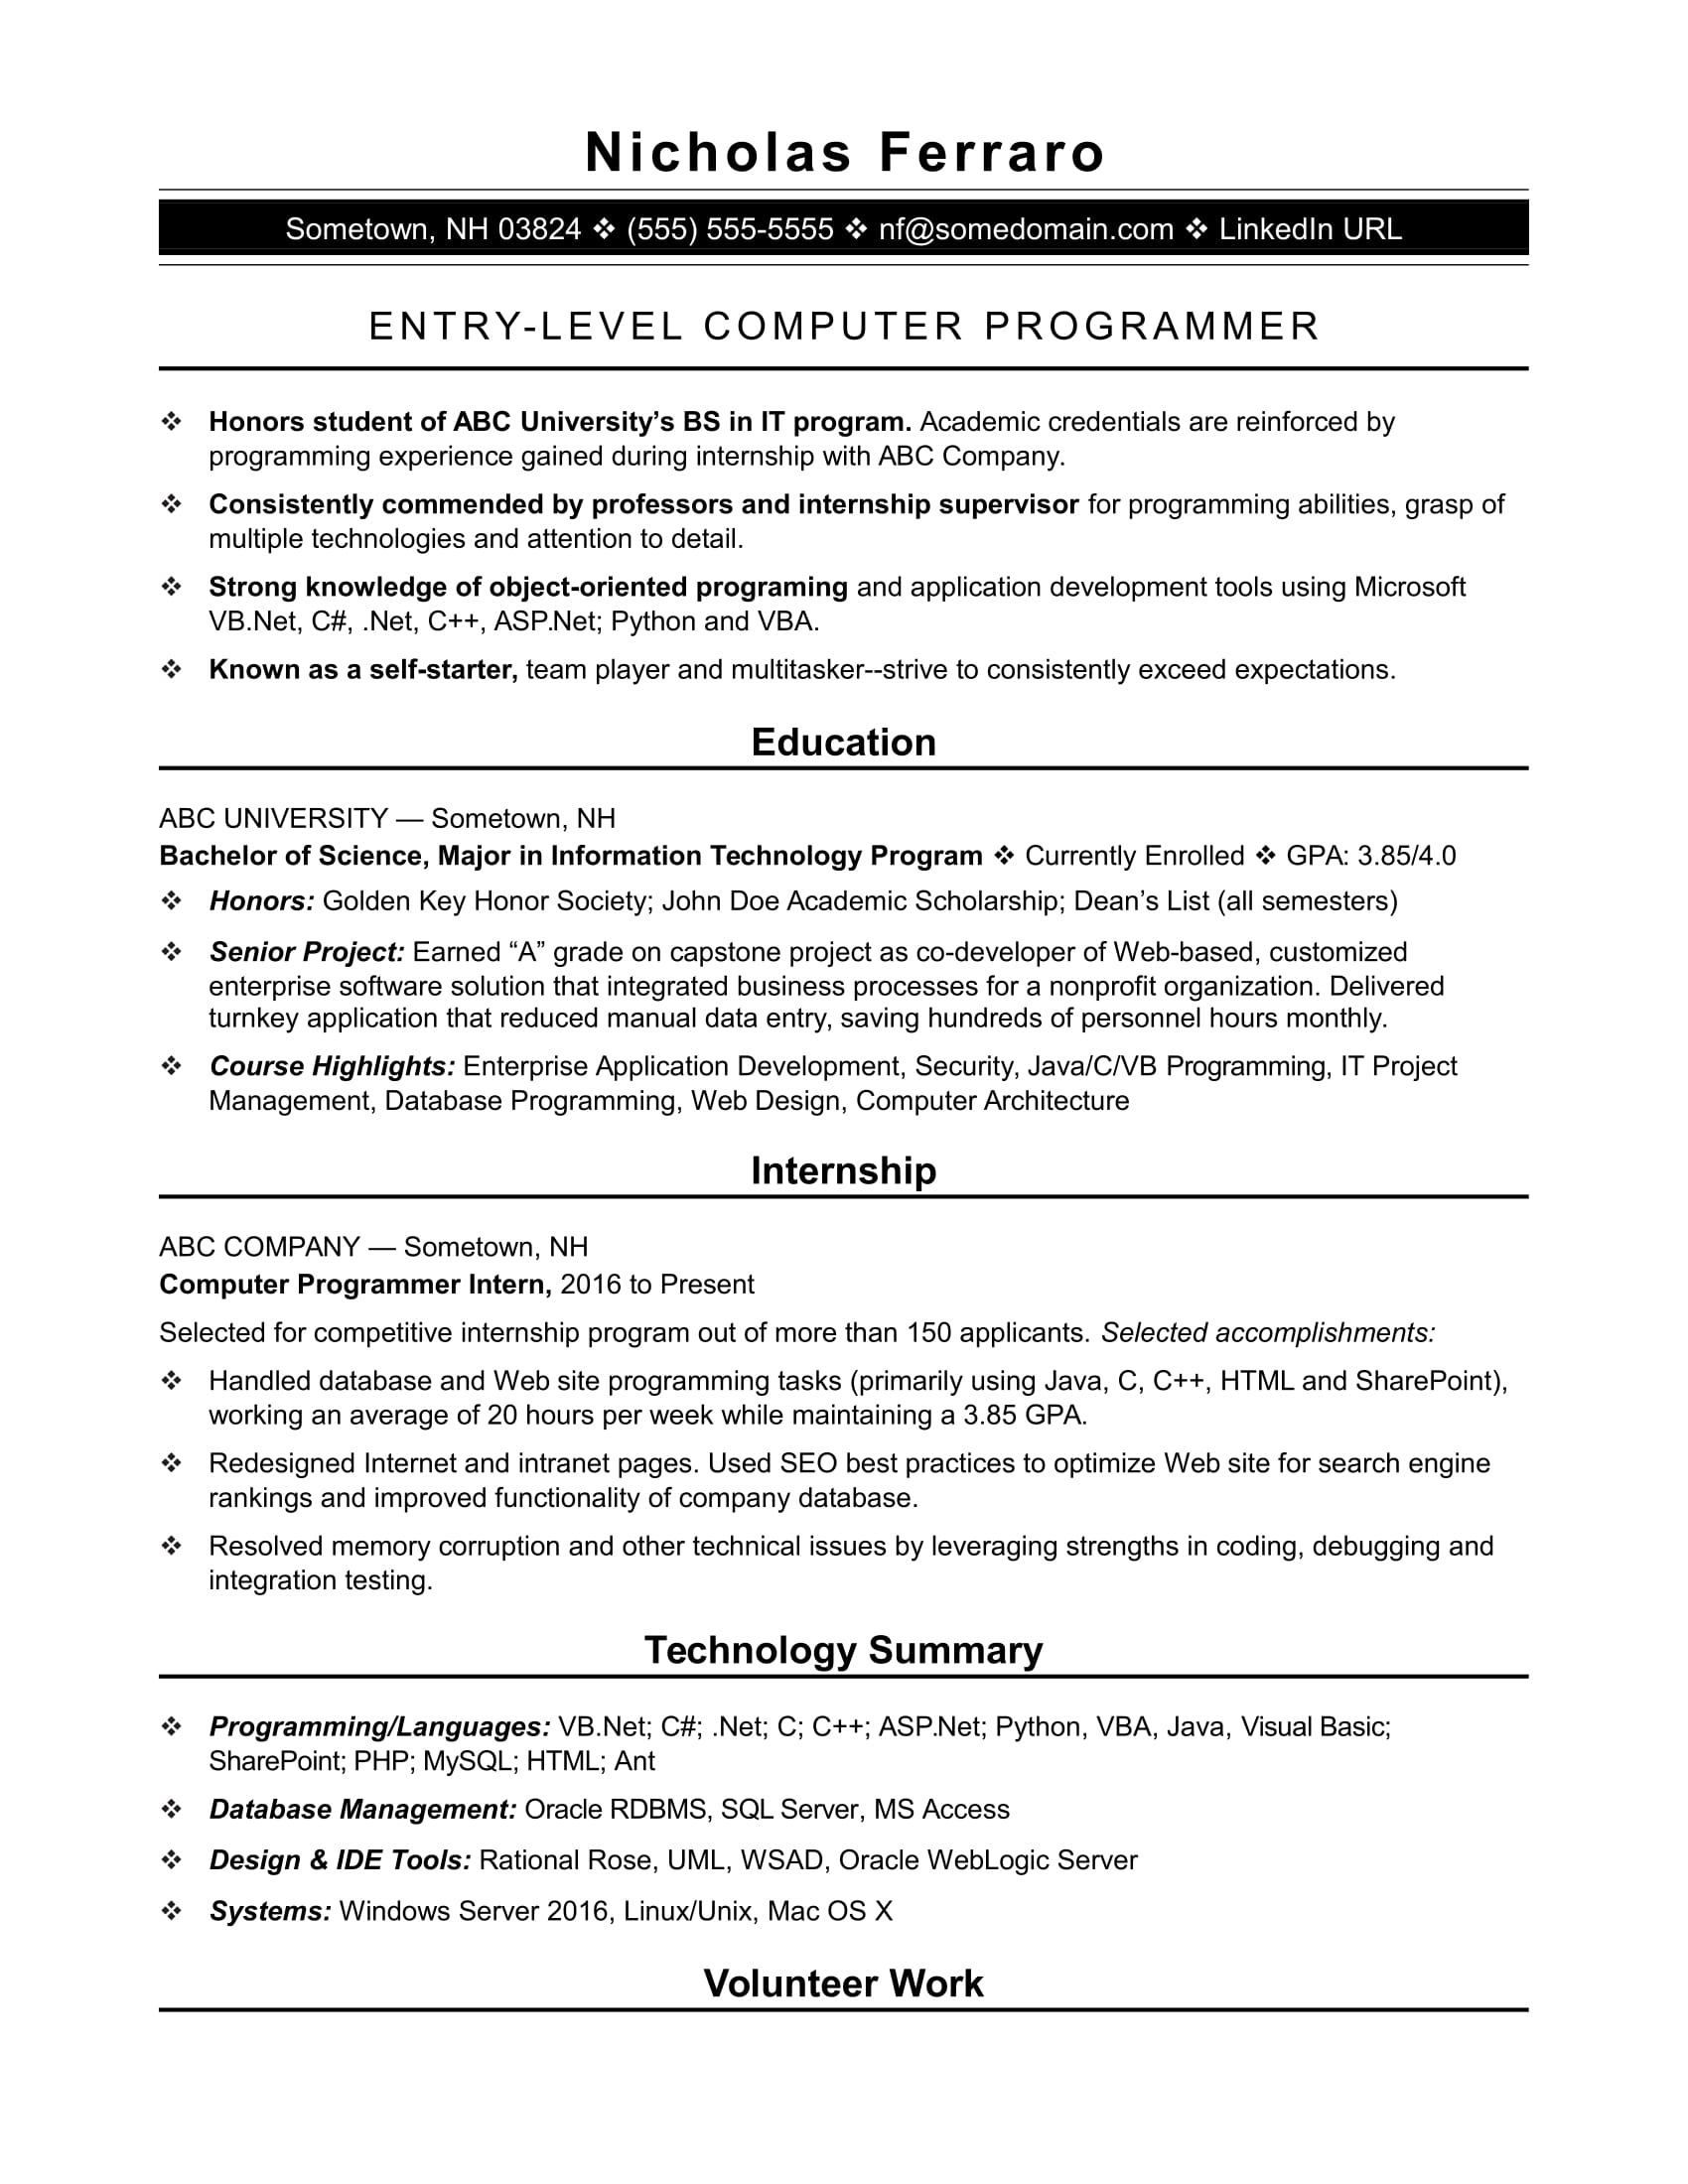 Sample Resume For An Entry Level Computer Programmer  Python Developer Resume